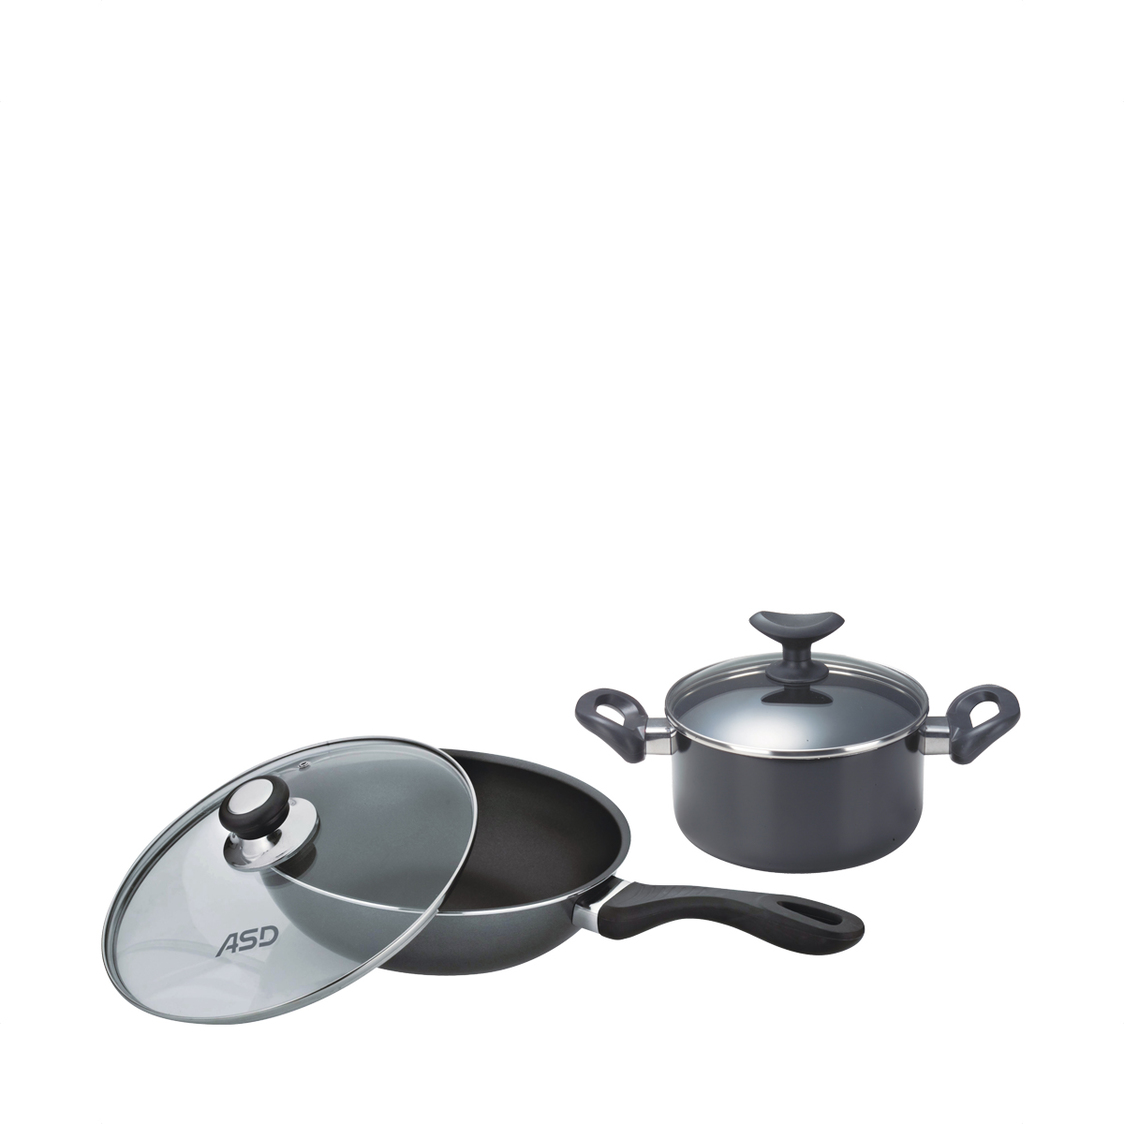 28cm Non-Stick Stirfry Pan with Glass Cover HP8328GL  24cm Non-Stick Stockpot with Glass Cover HP8724